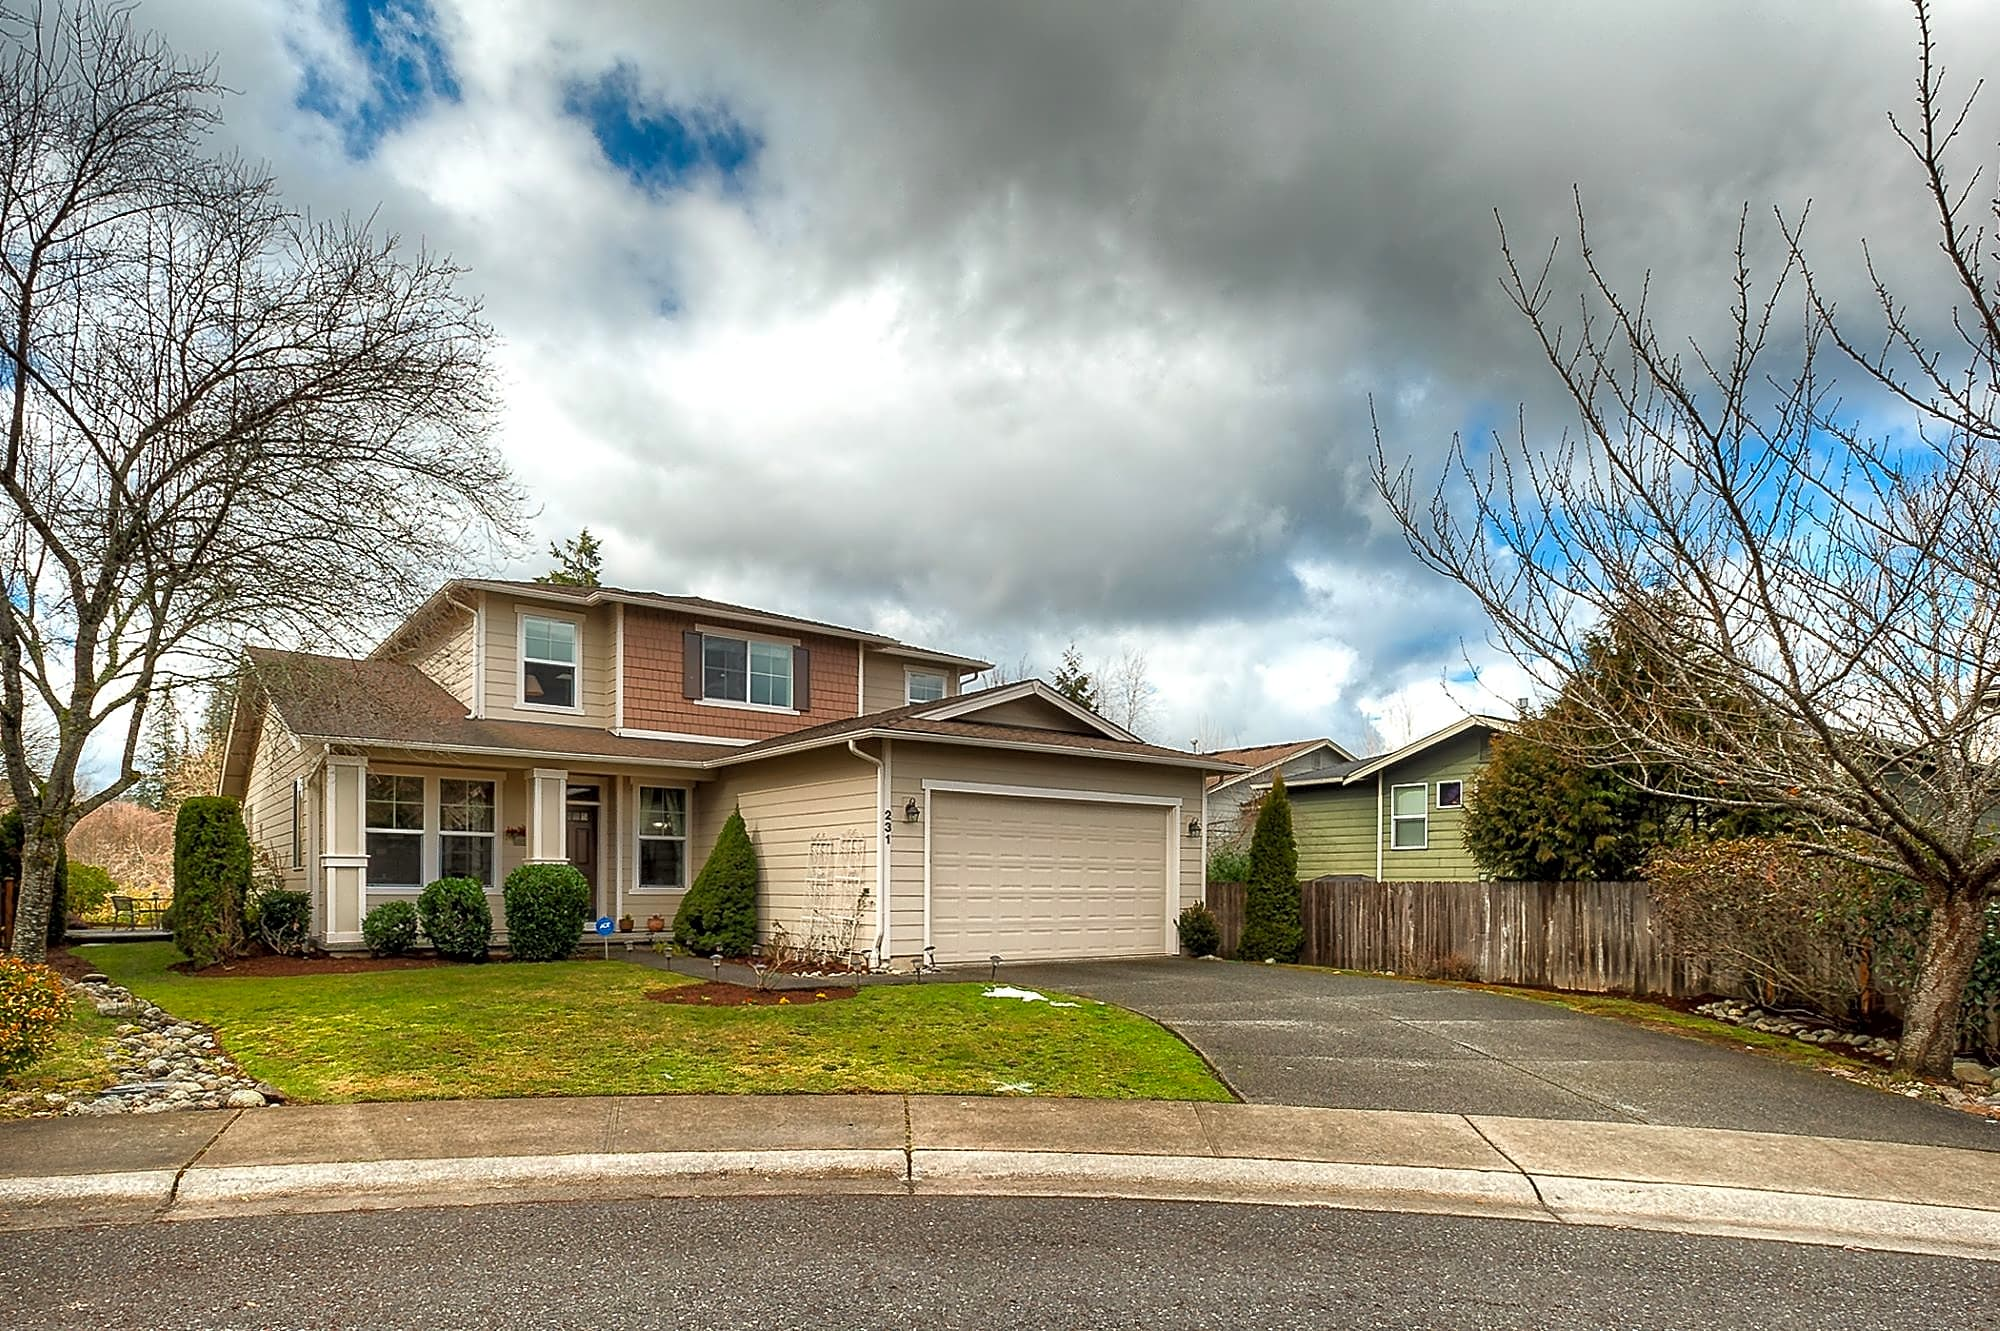 House for Rent in Sammamish